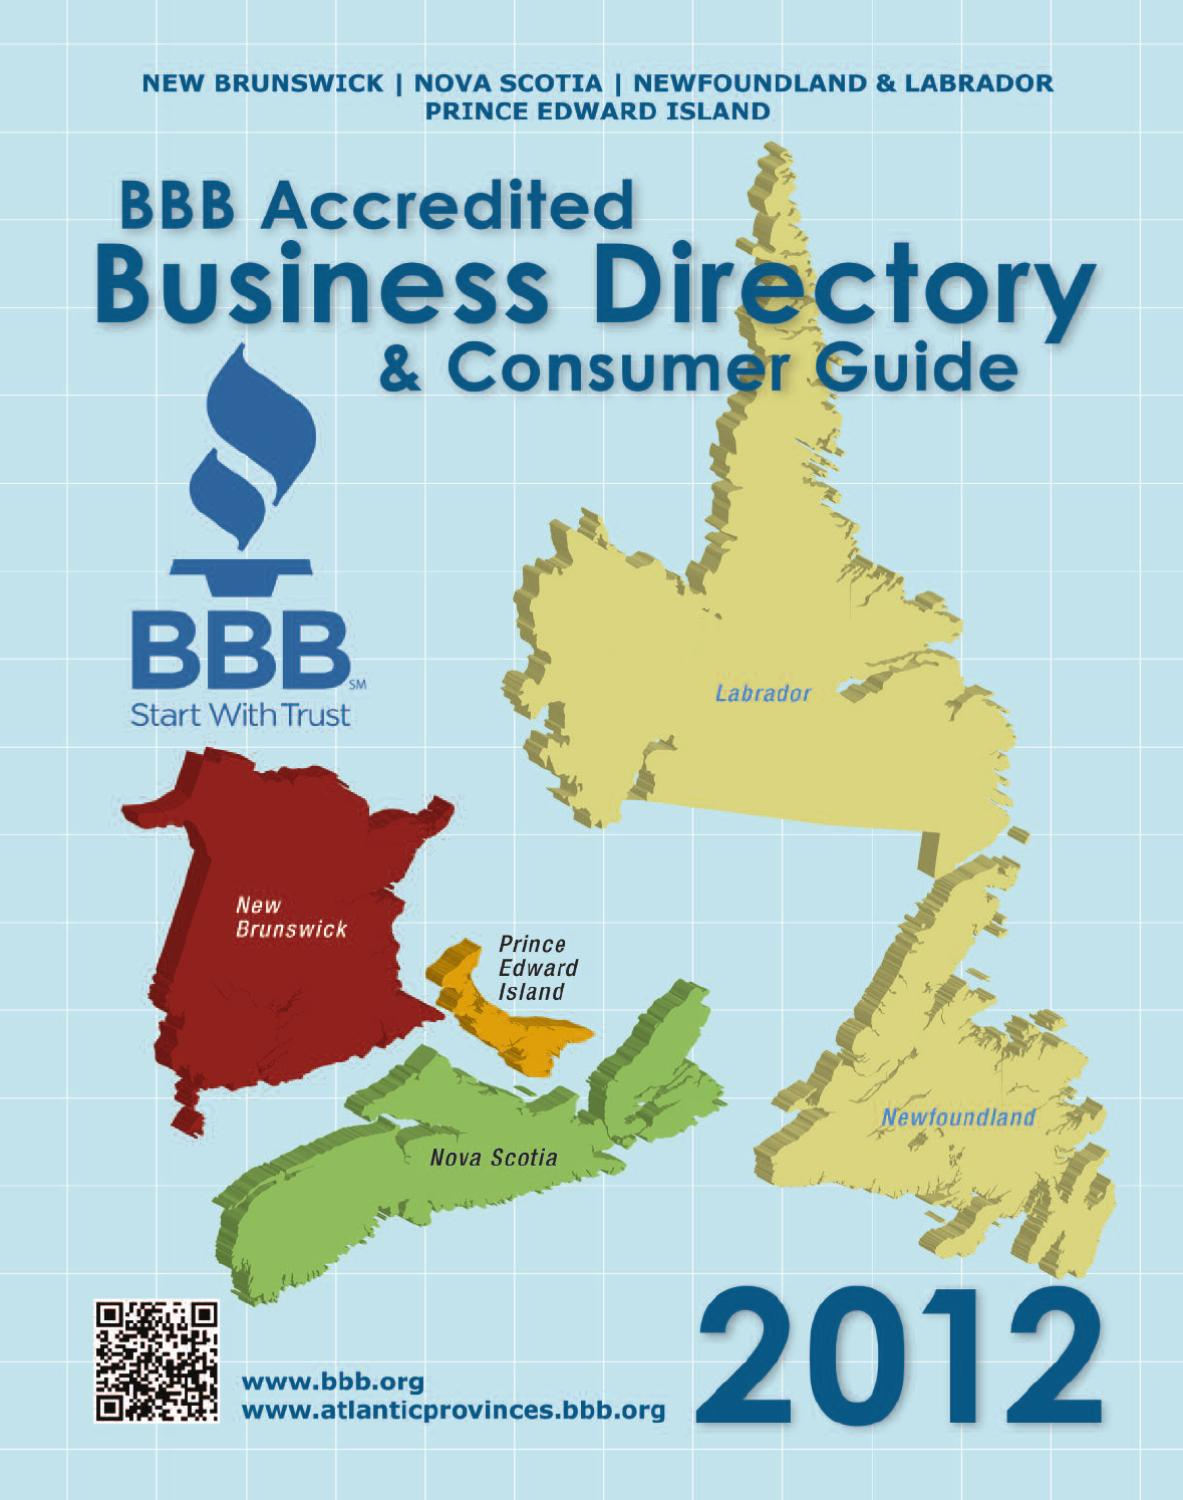 BBB Consumer Guide 2012 by Better Business Bureau of the Atlantic Provinces  - issuu